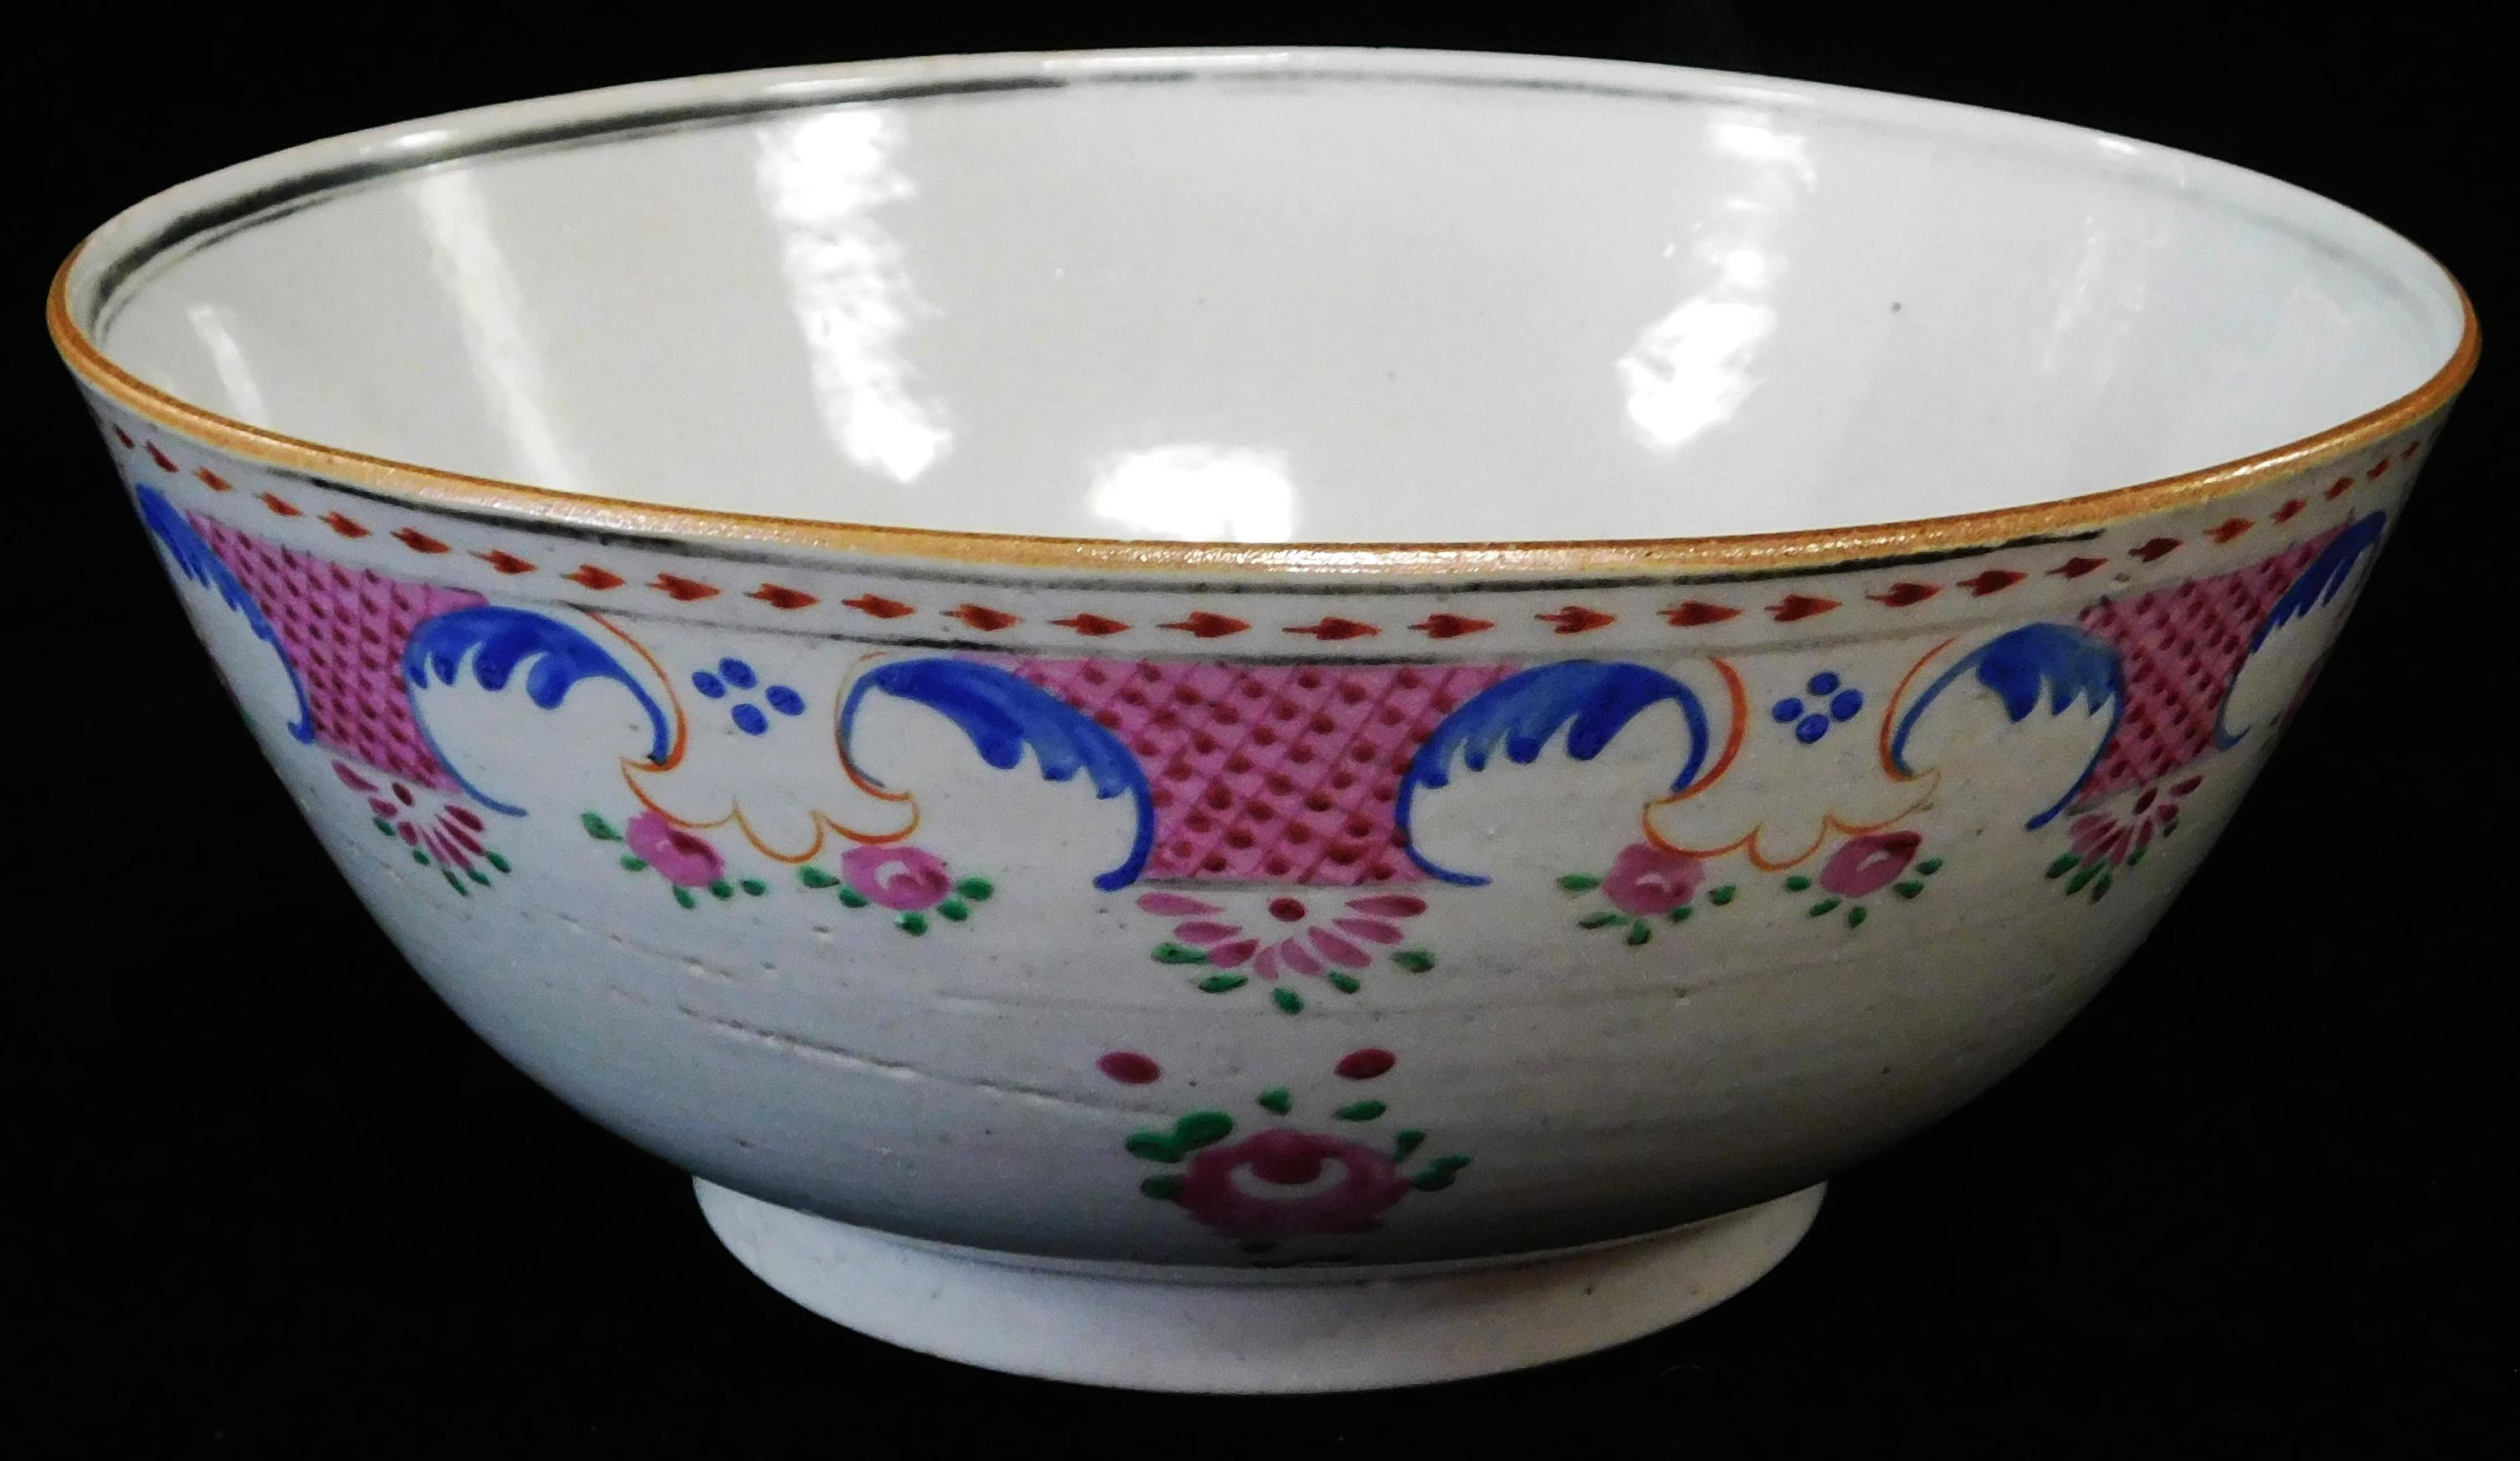 ASIAN: Chinese Export porcelain bowl, late 18th/early 19th C., famille rose floral decoration, wear consistent with age and use, 8 ¾...